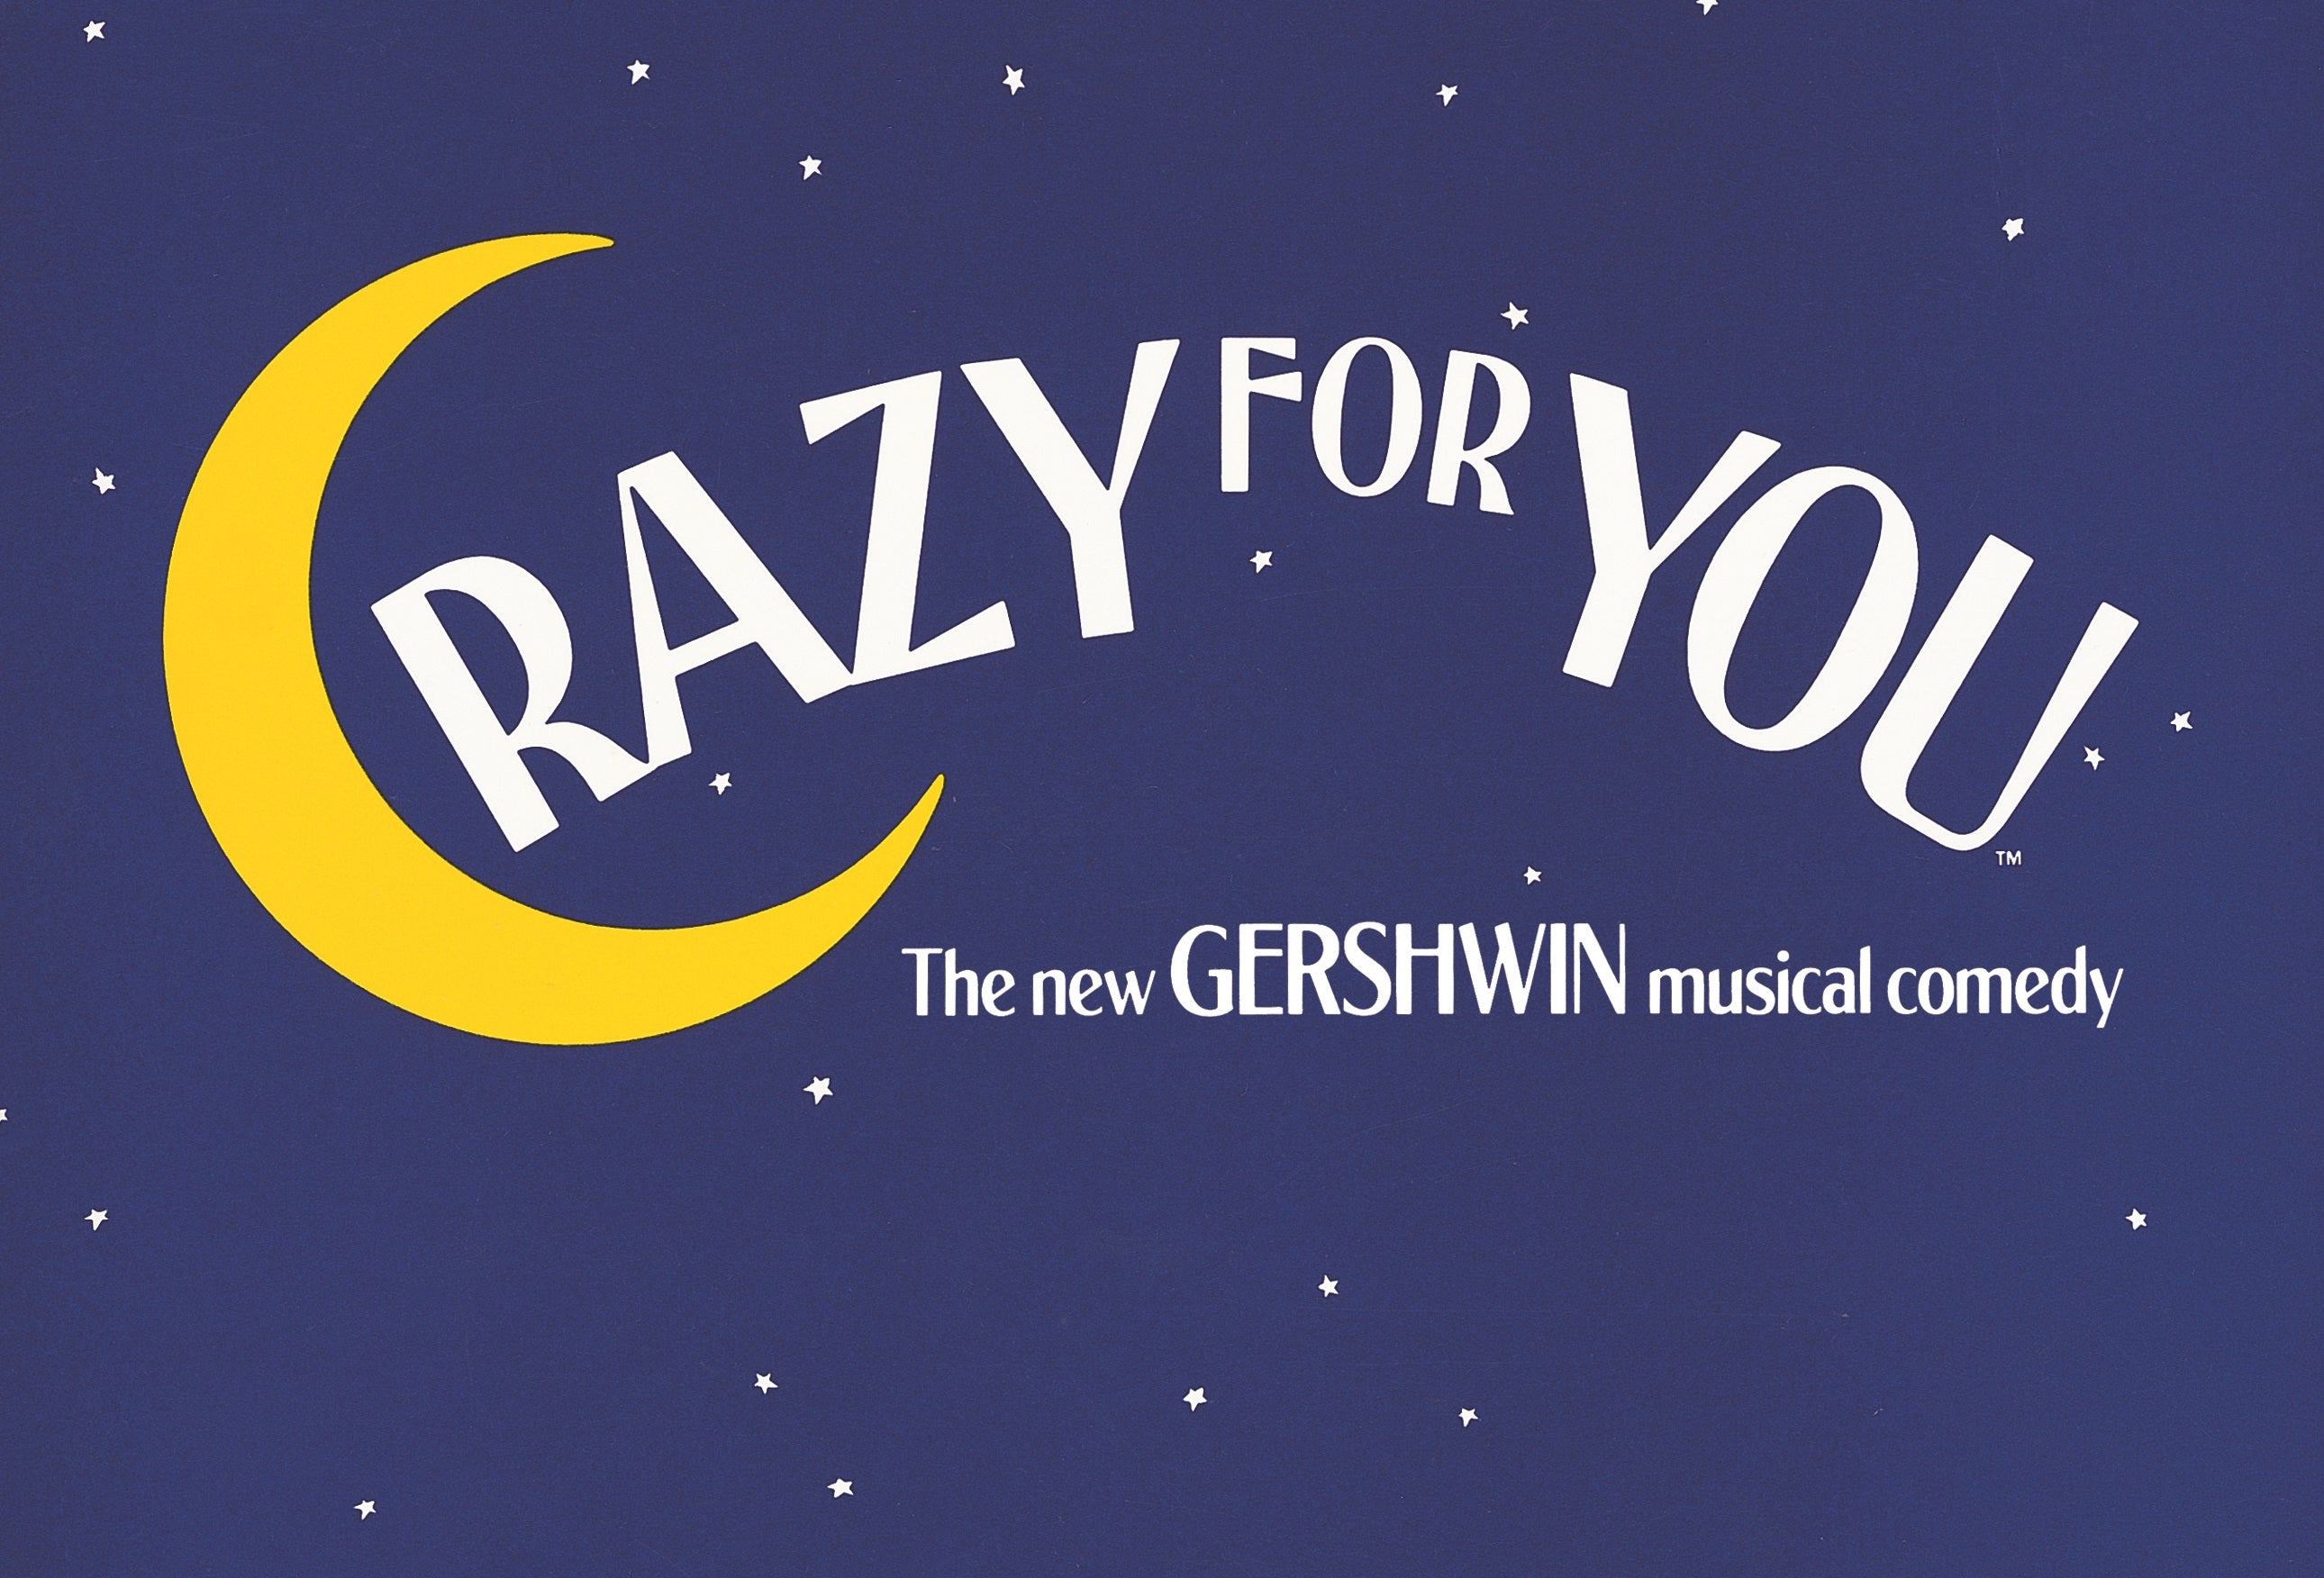 Crazy for You musical theatre west end